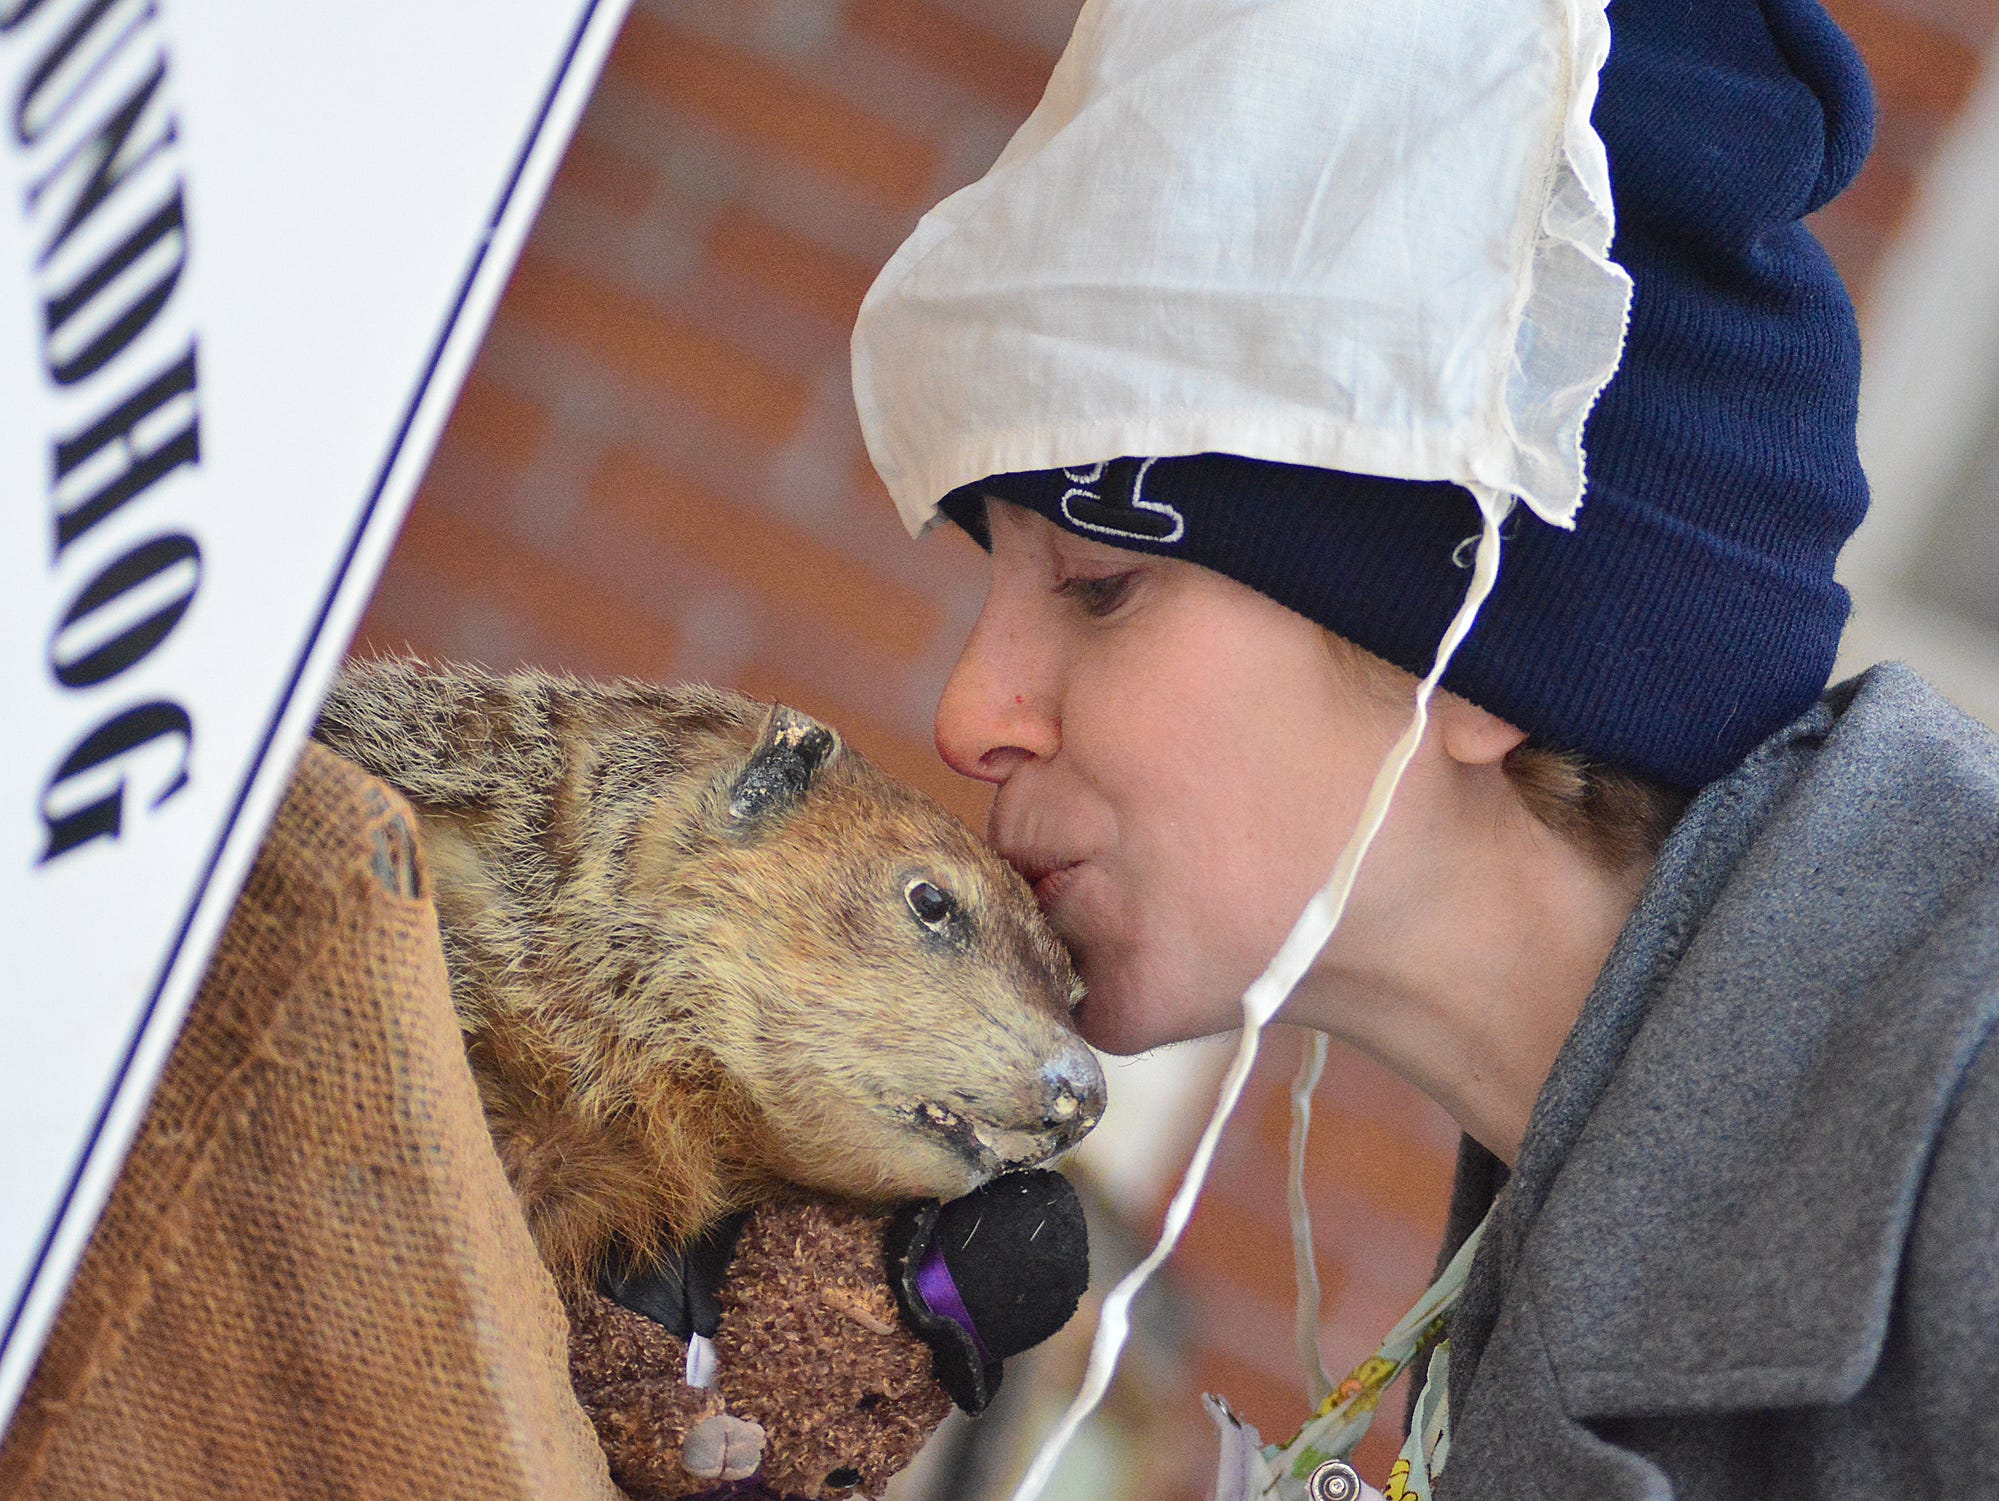 Laura Jensen of York City kisses Poor Richard. New members of the Groundhog lodge wore hats and bibs during the Saturday festivities. Bil Bowden photo.